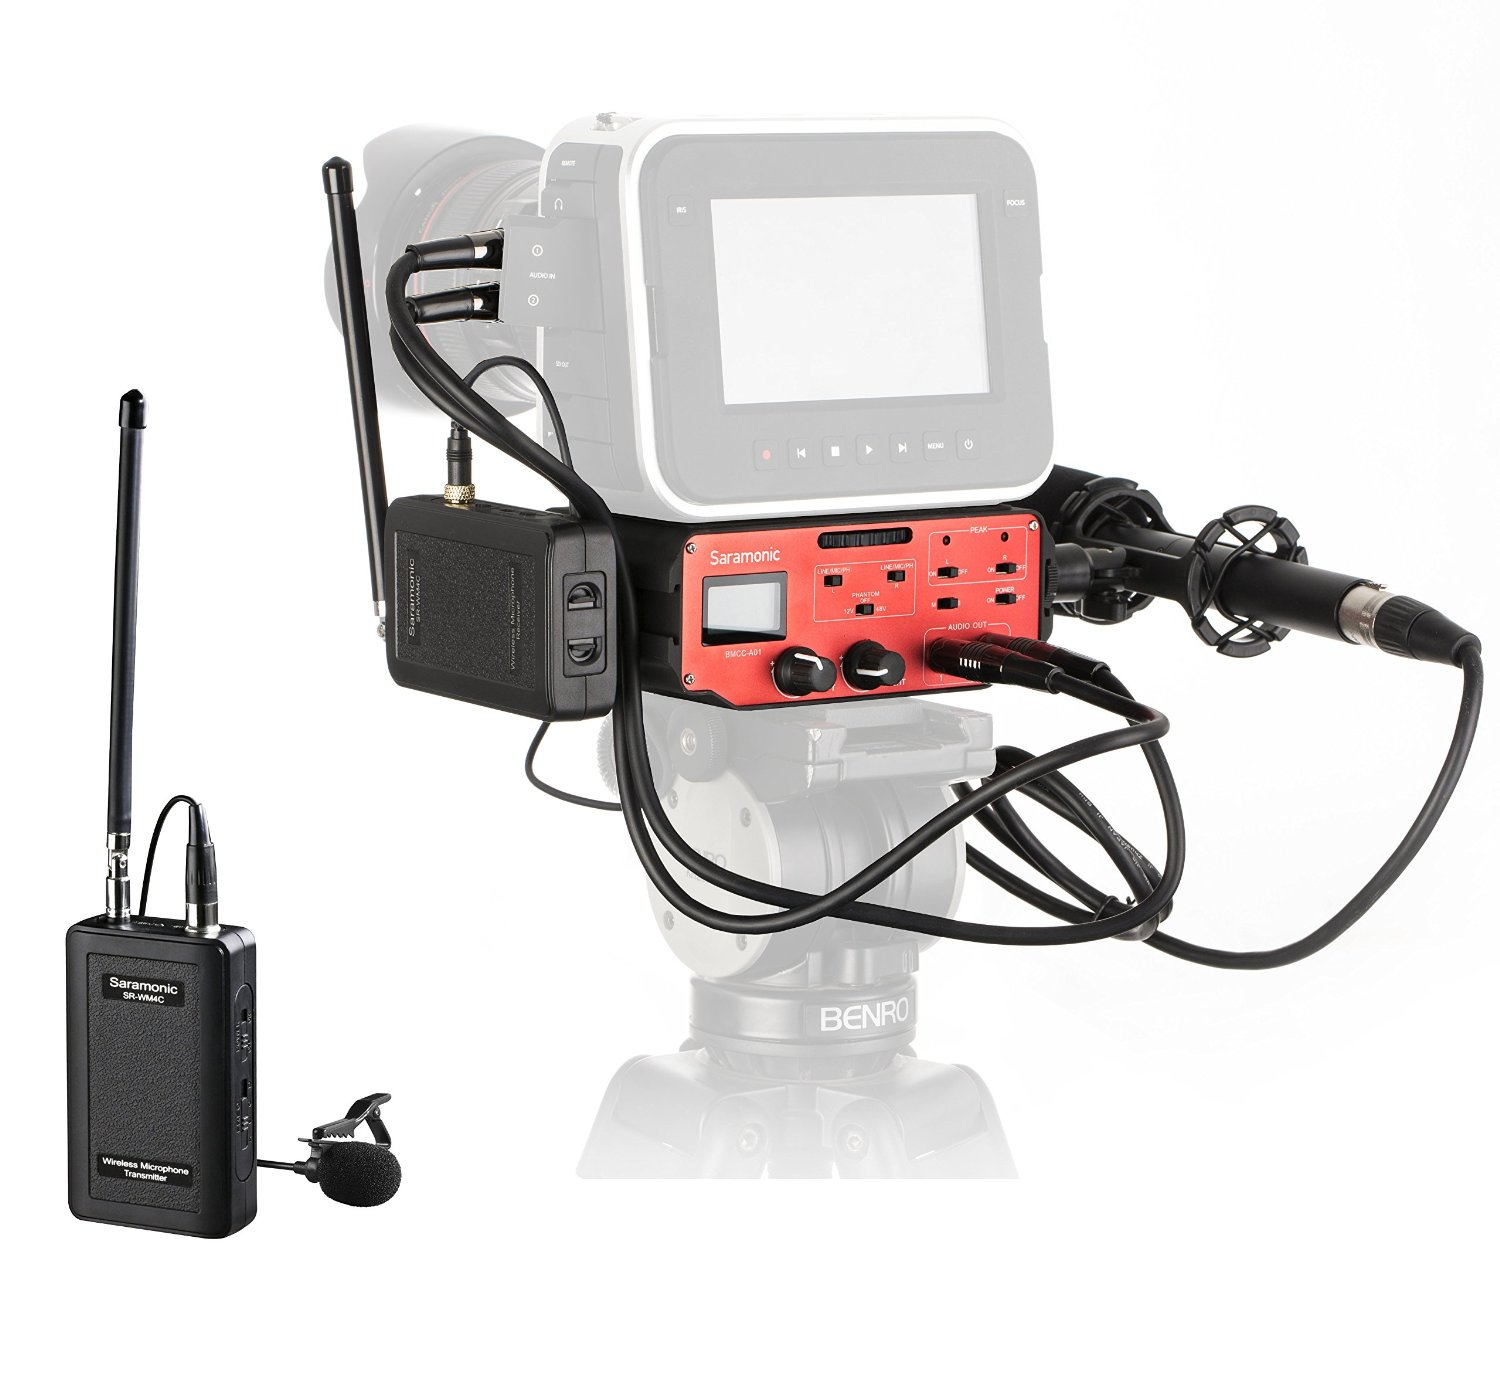 Saramonic BMCC Audio Kit: Shotgun Microphone, VHF Wireless Lavalier & 2-CH Mixer by Movo